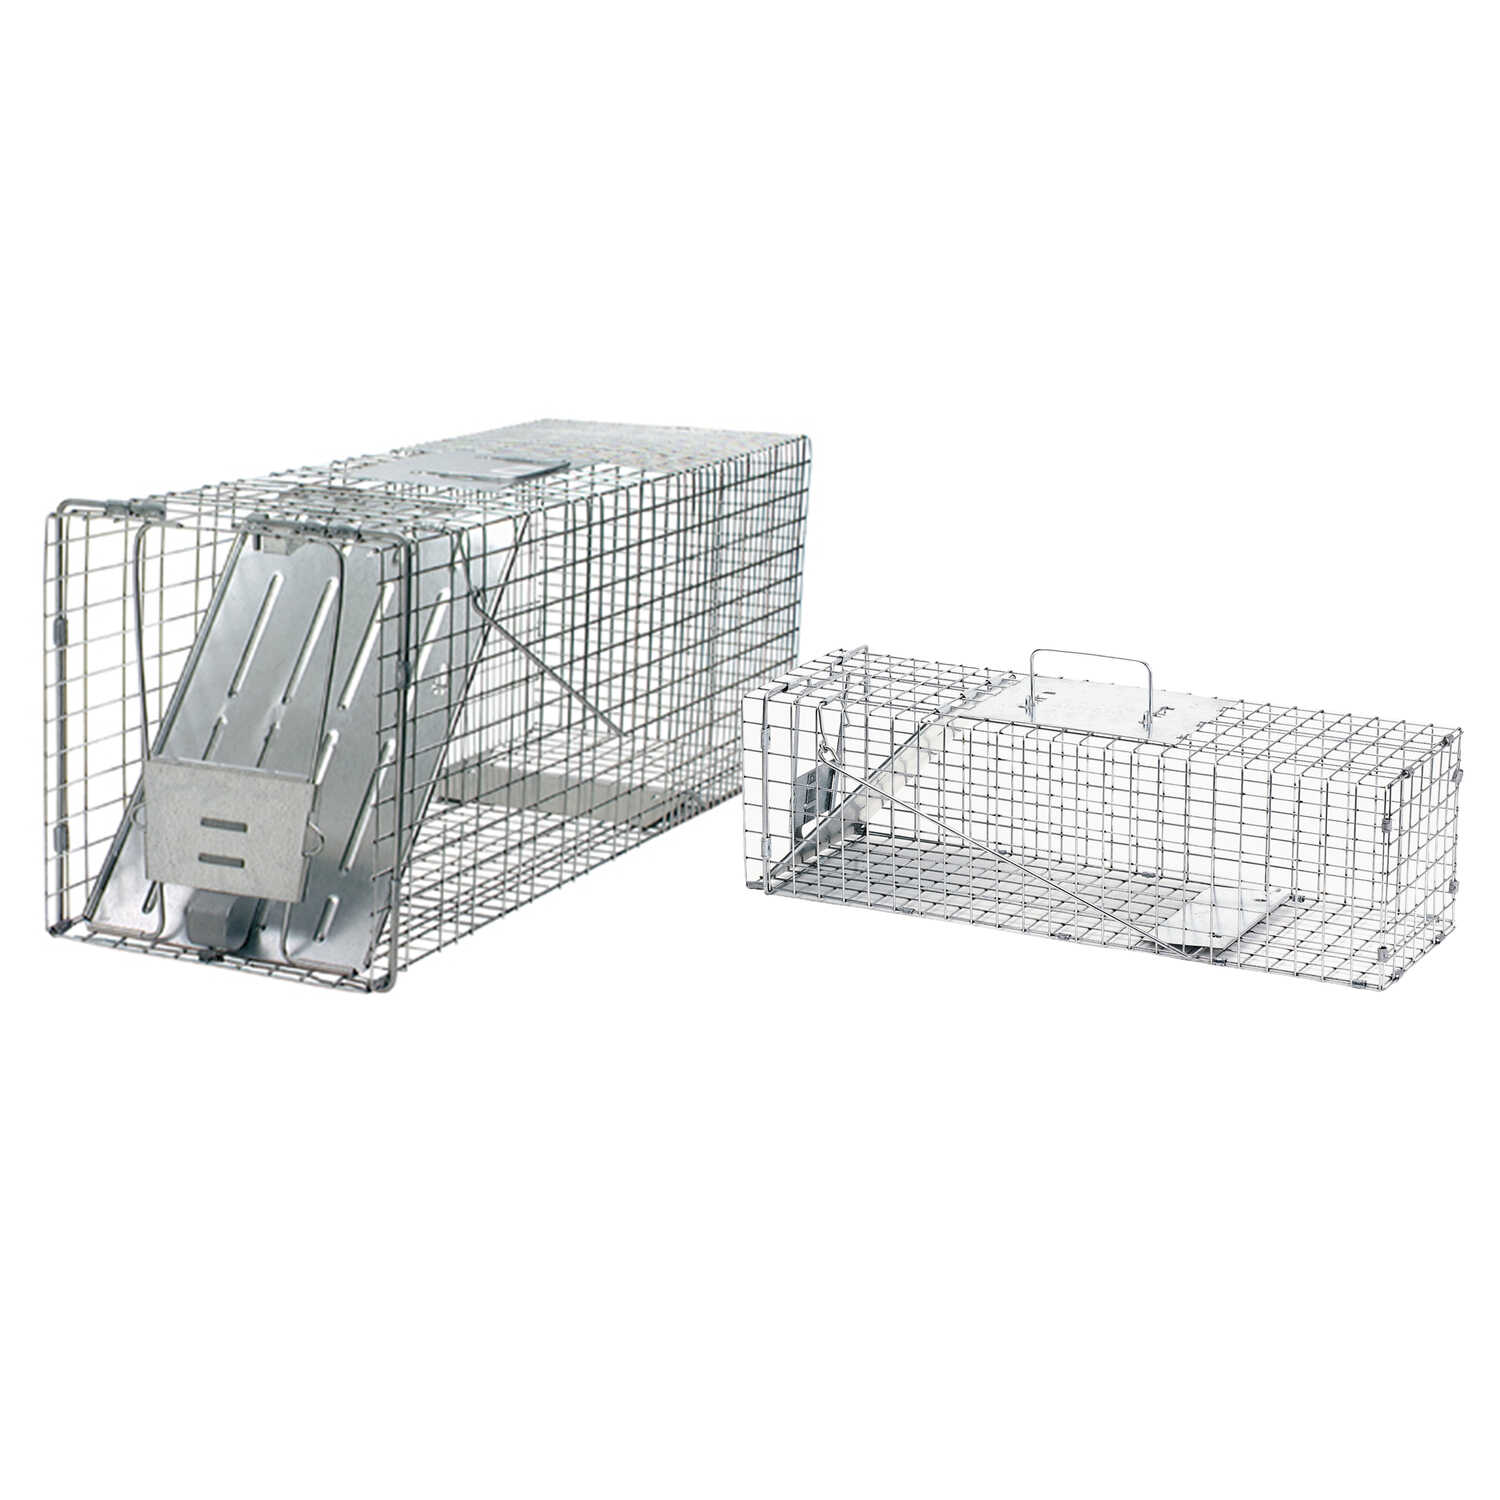 Havahart  Live Catch  Animal Trap  For Raccoons, Raccoons 2 pk